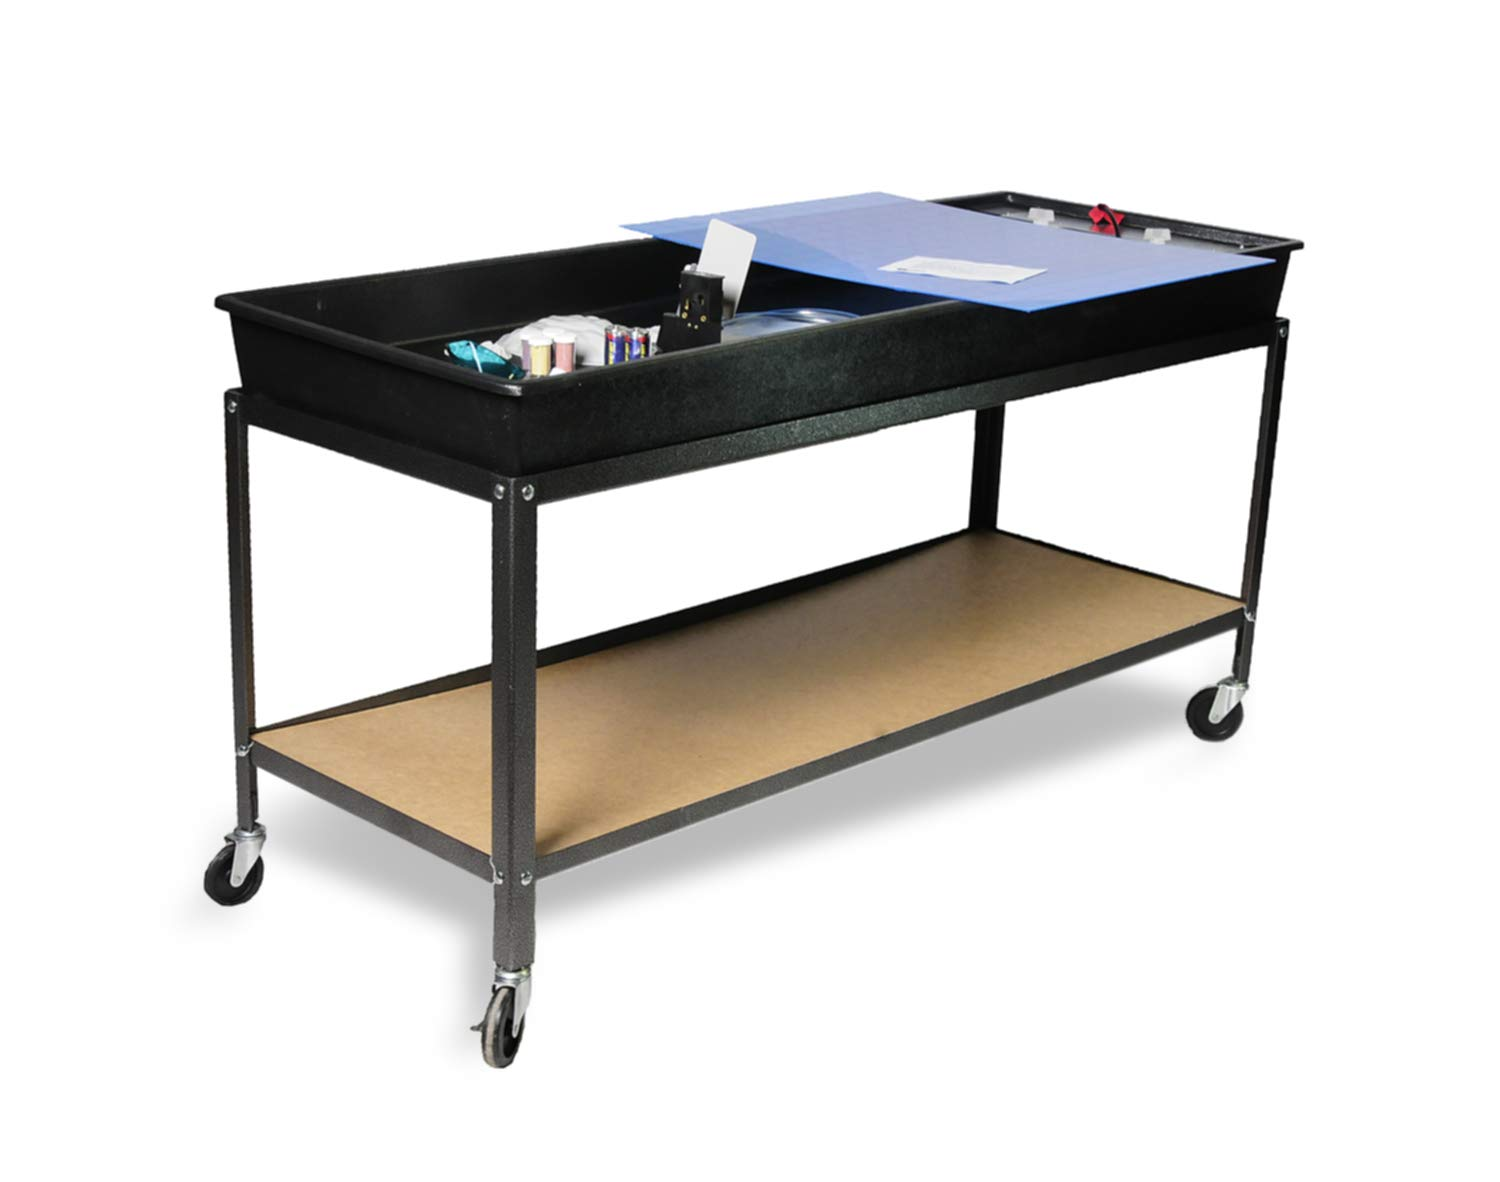 American Educational Plastic Hydro Geology Stream Table with Cart and Accessories, 66'' Length x 26'' Width x 6'' Depth by American Educational Products (Image #1)